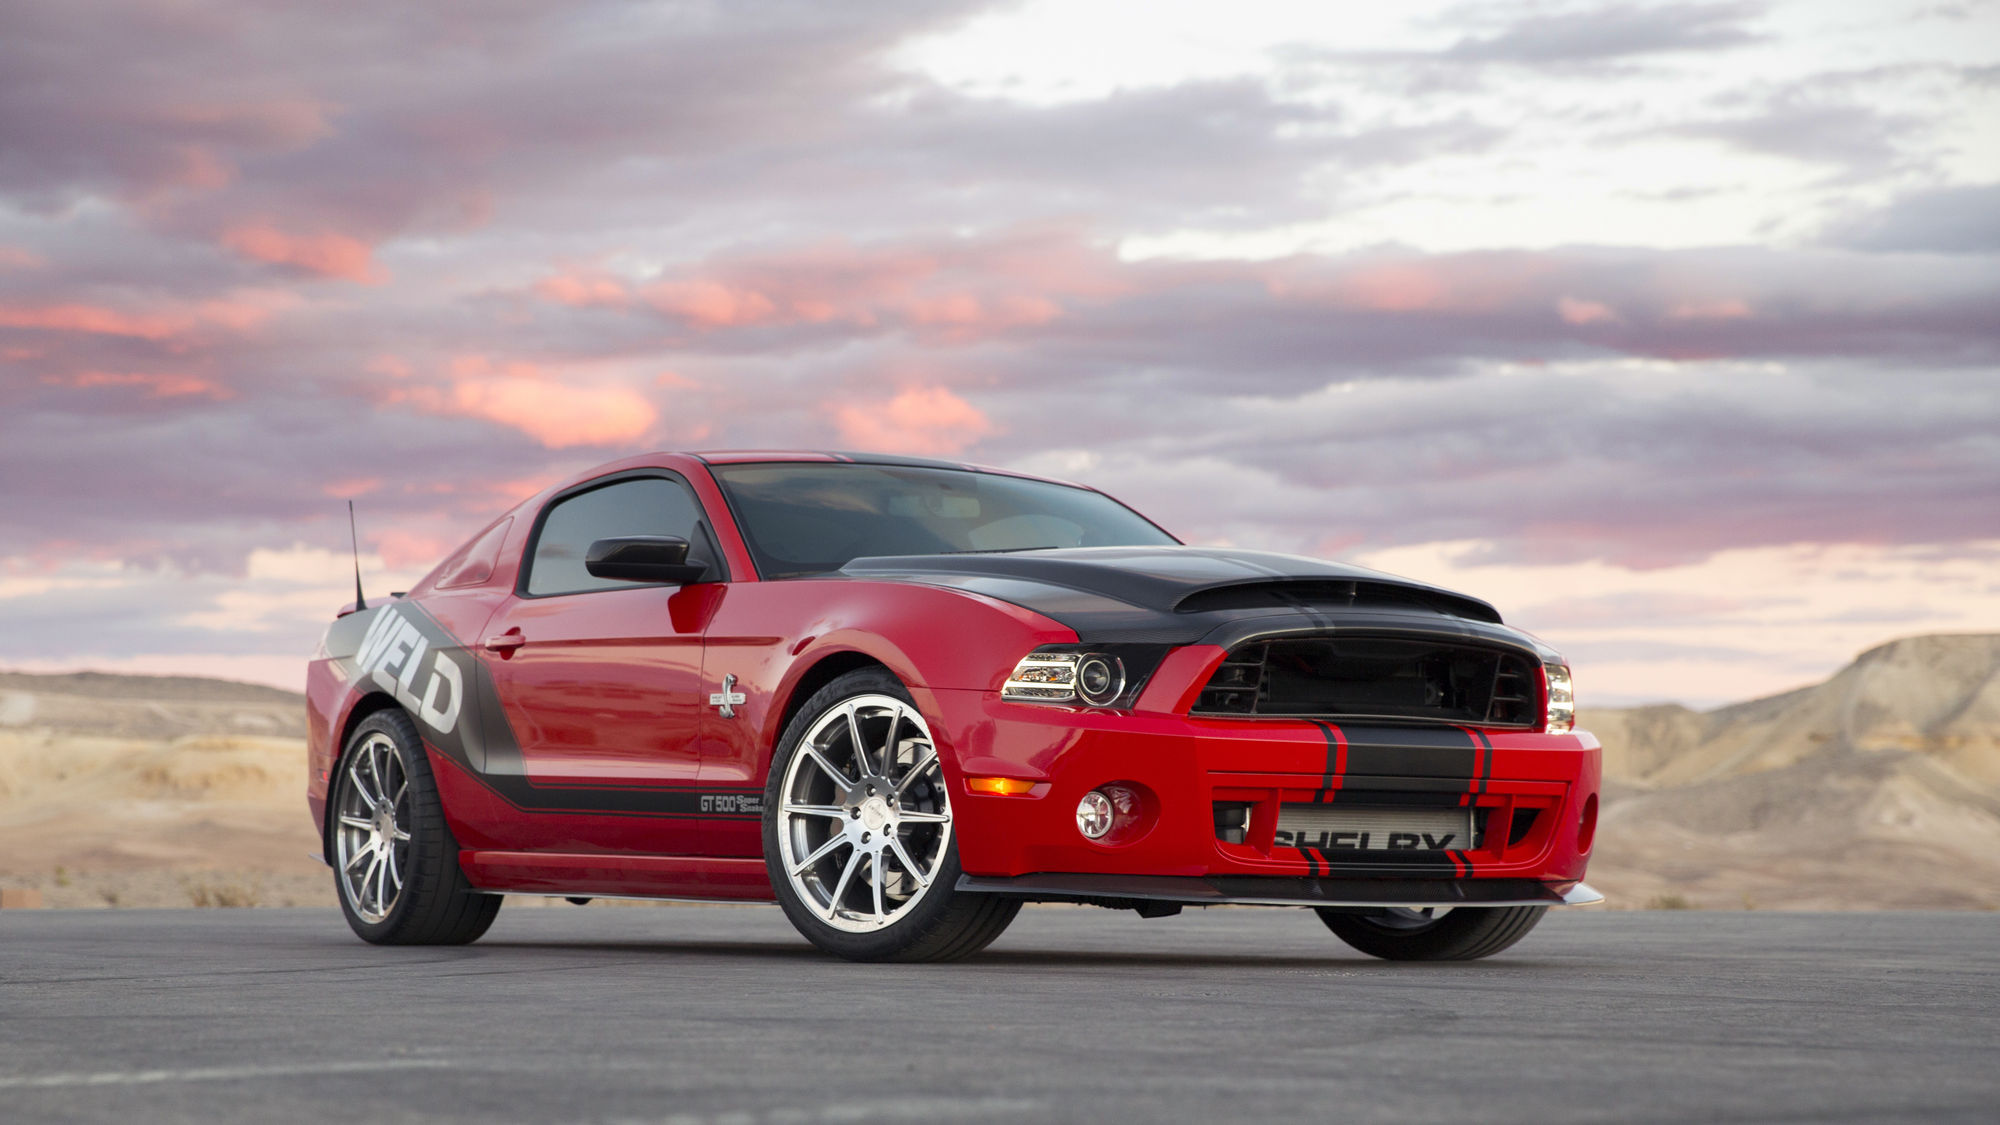 2014 Ford Shelby GT500   2014 Shelby GT500 Super Snake WELD Edition